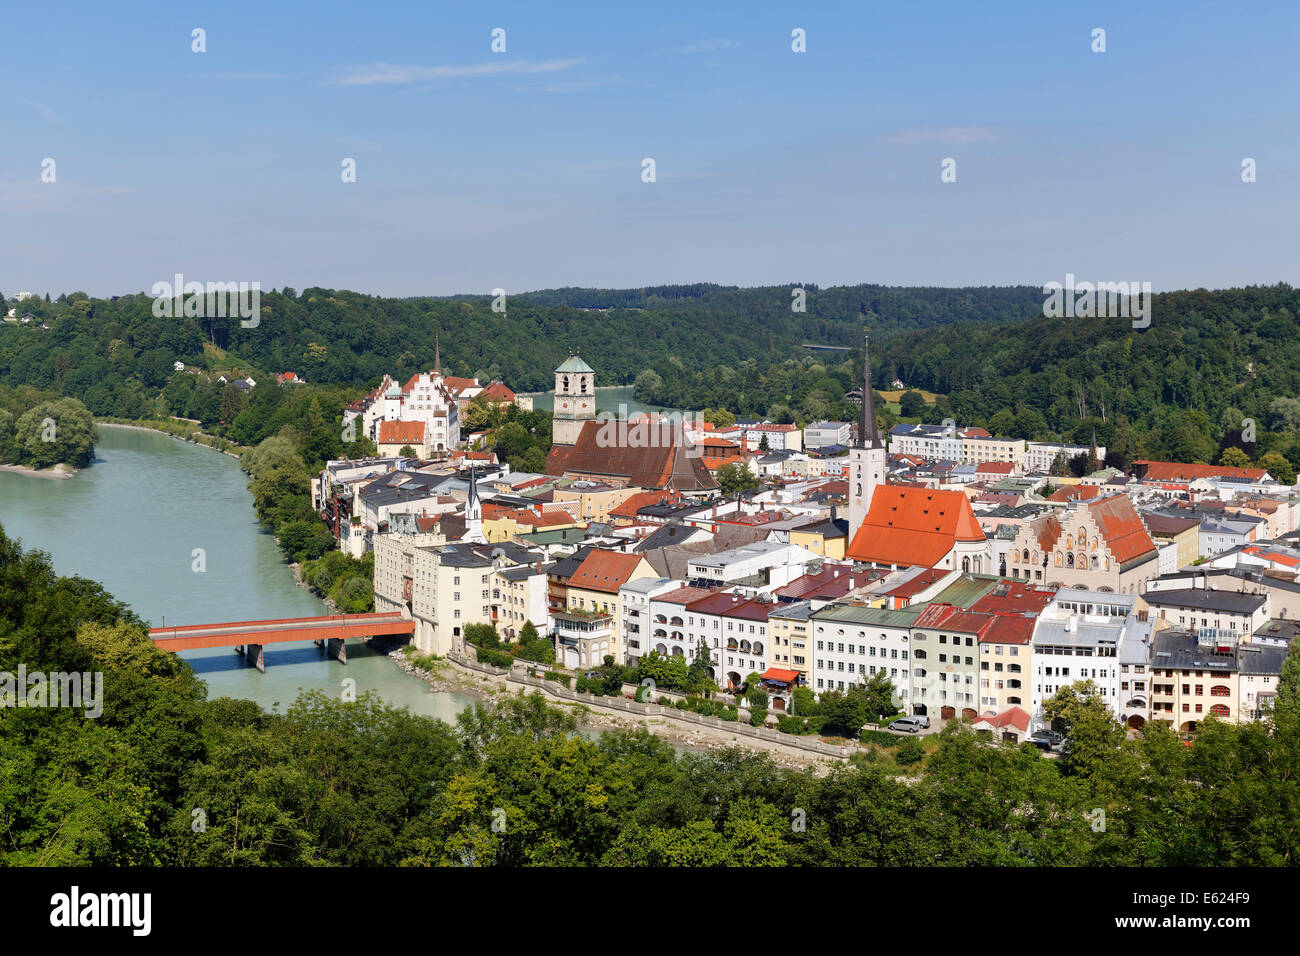 Wasserburg Am Inn Germania wasserburg at inn river stock photos & wasserburg at inn